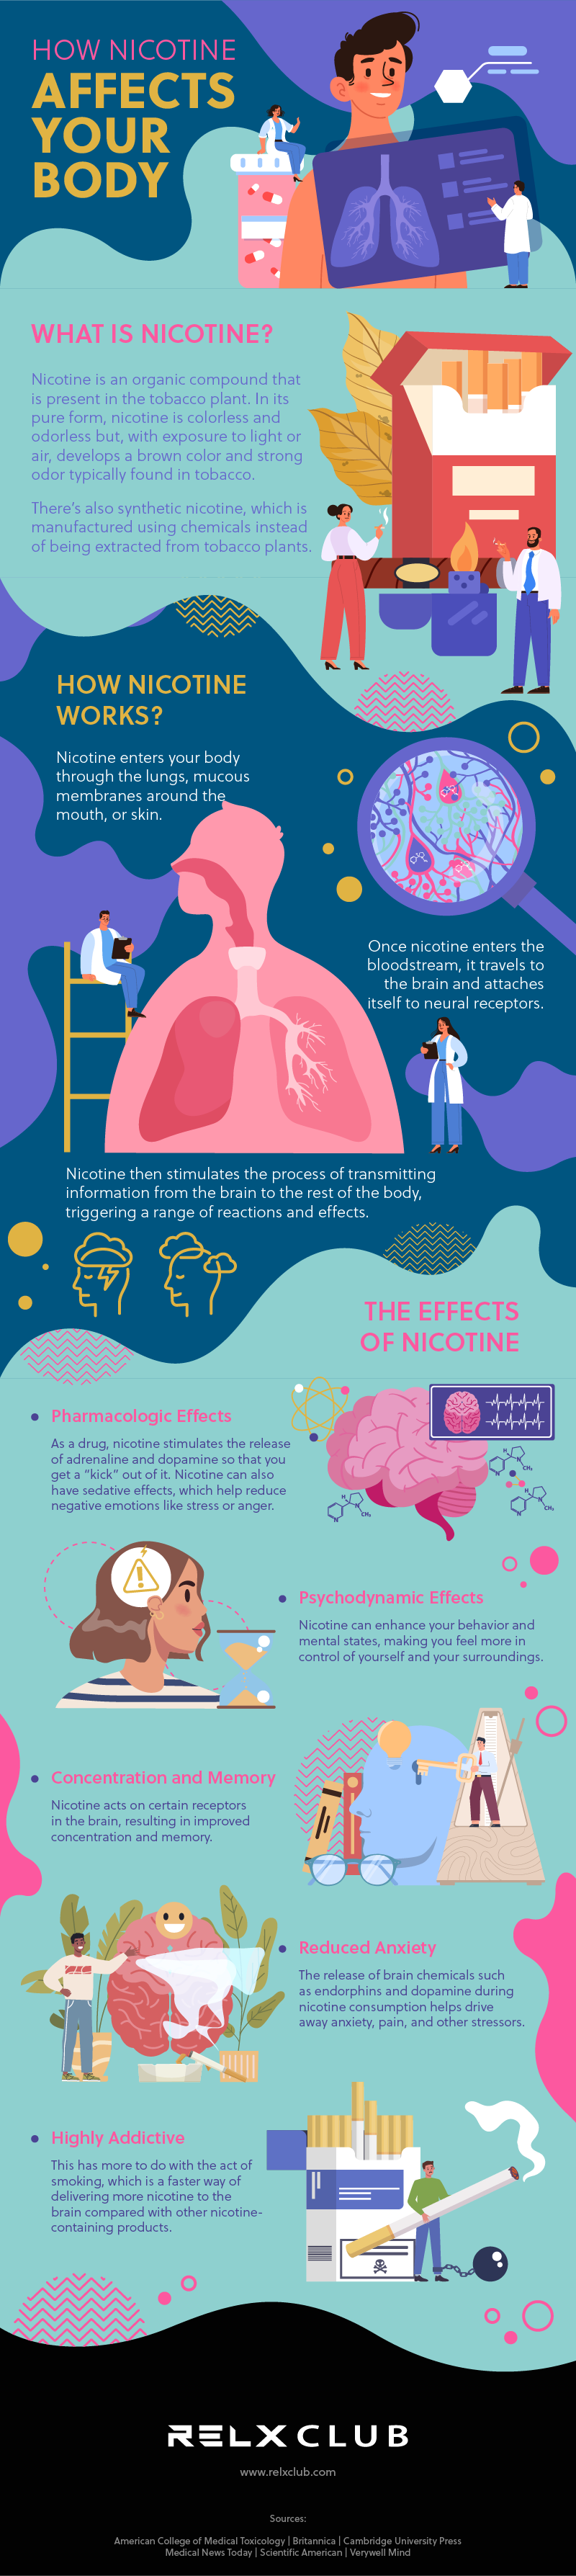 how nicotine affects your body infographic